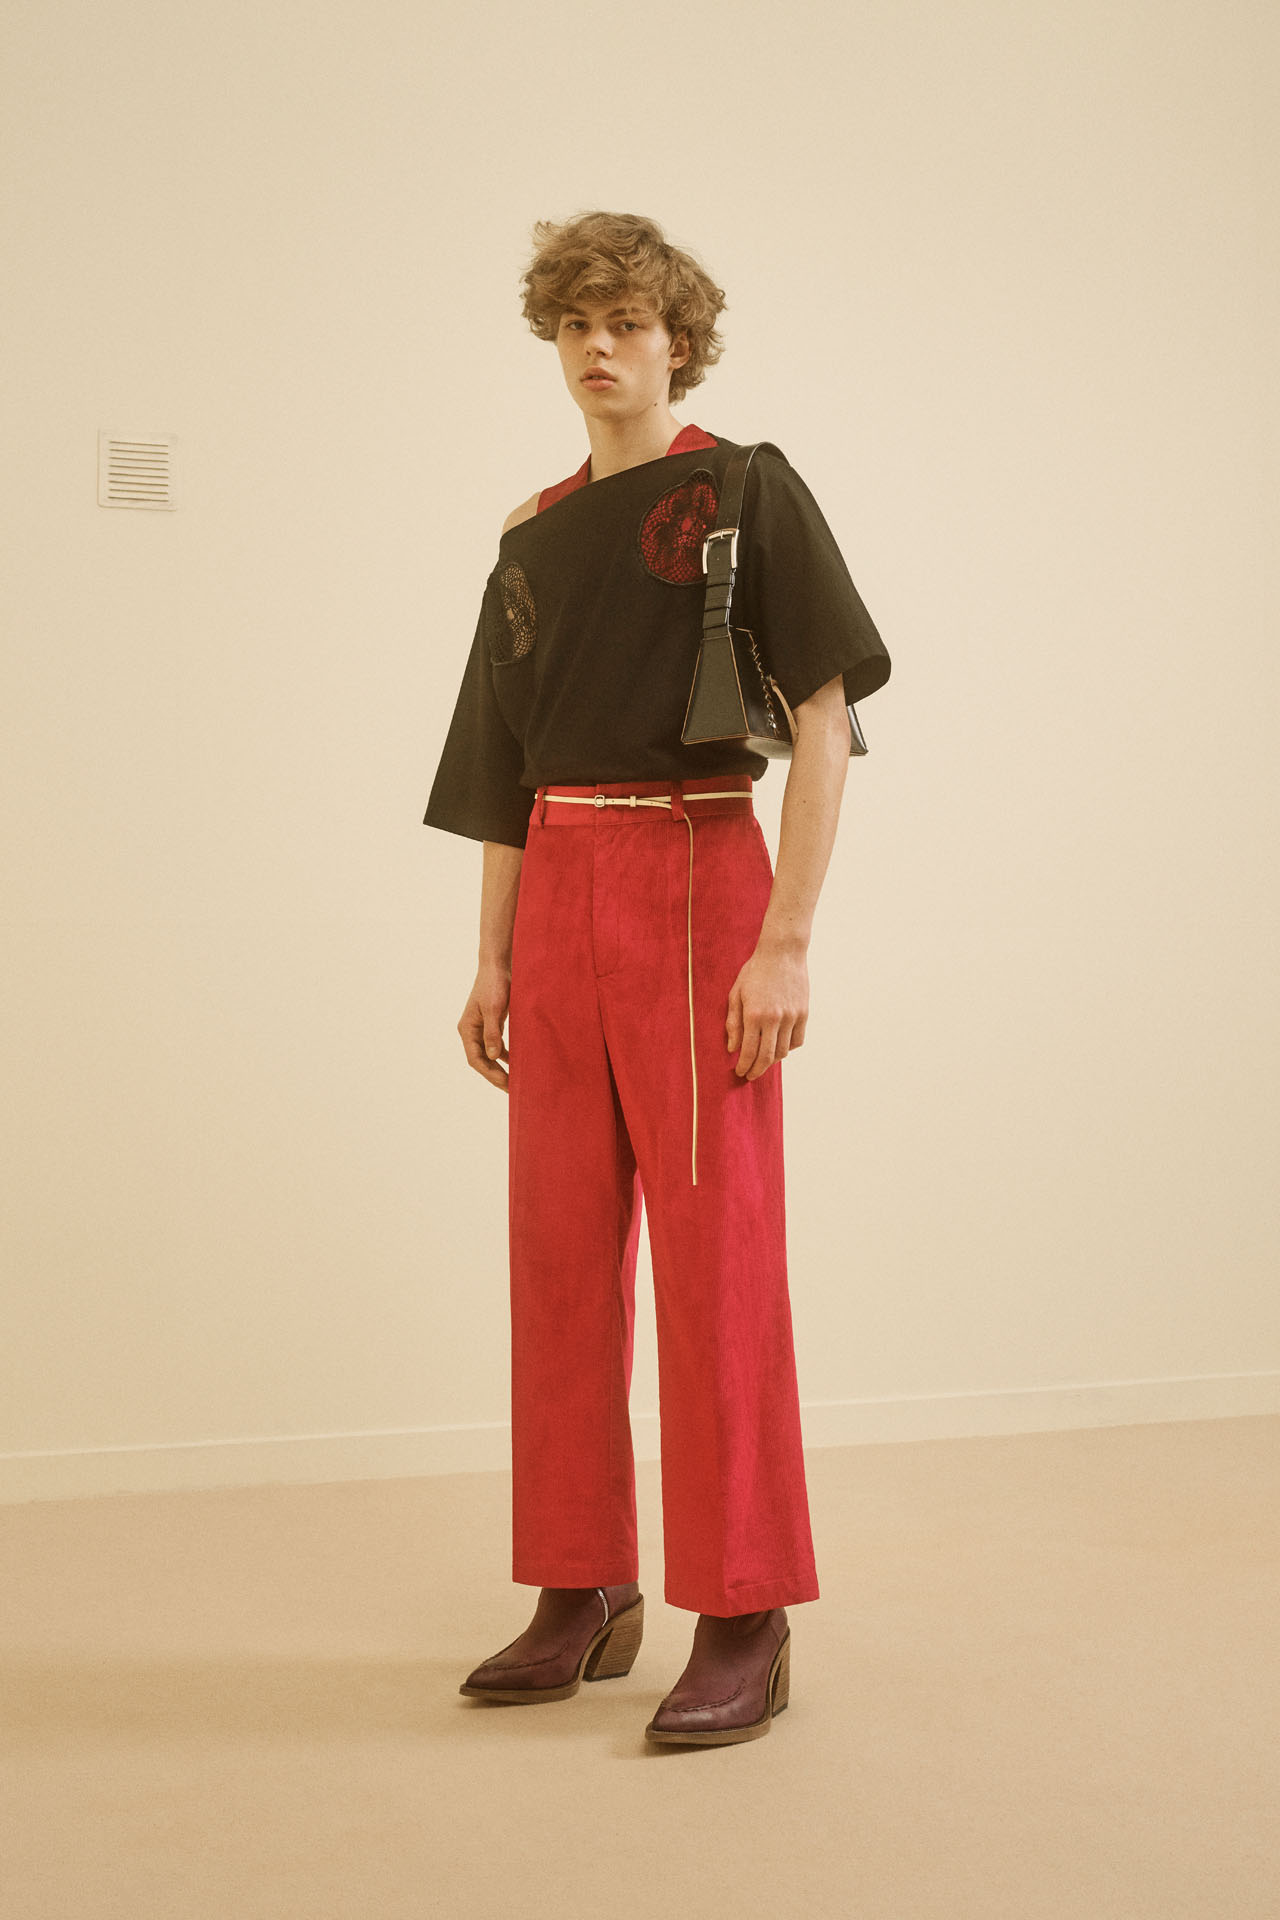 Look Fall/Winter 2021, image 13